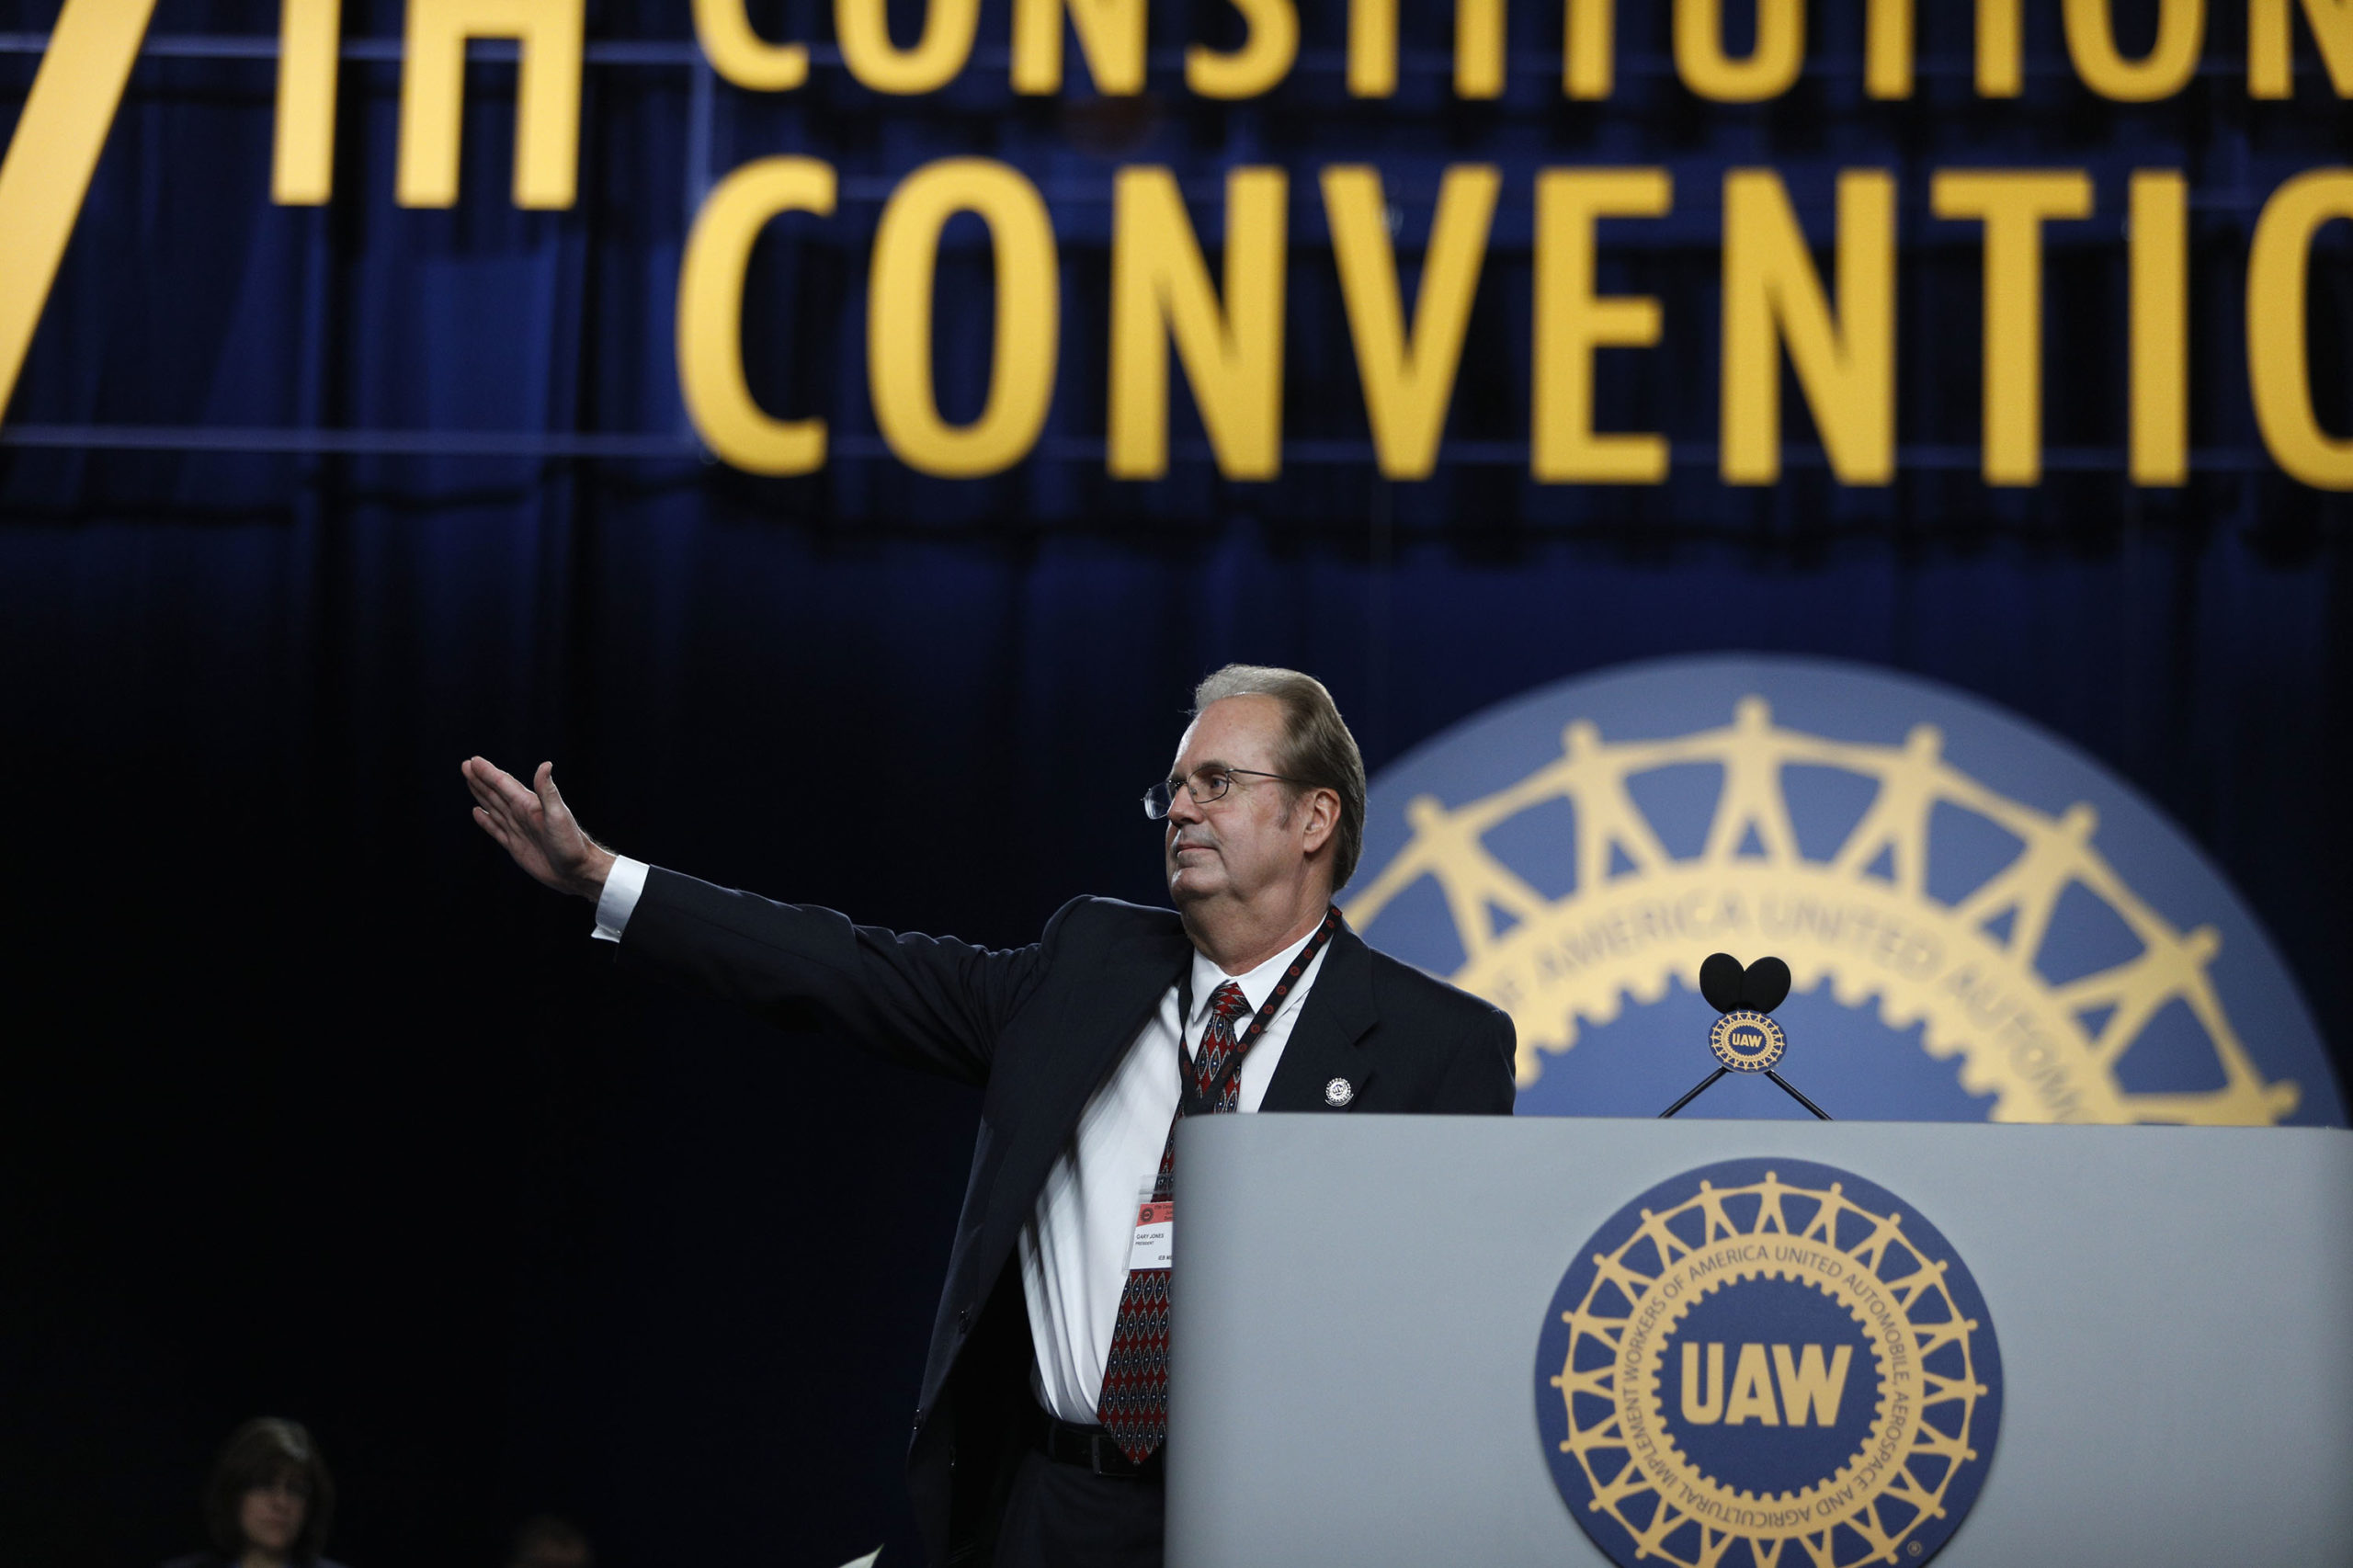 Gary Jones, former president of the UAW, addresses the 37th UAW Constitutional Convention in 2018 at Cobo Center in Detroit, Michigan. (Bill Pugliano/Getty Images)